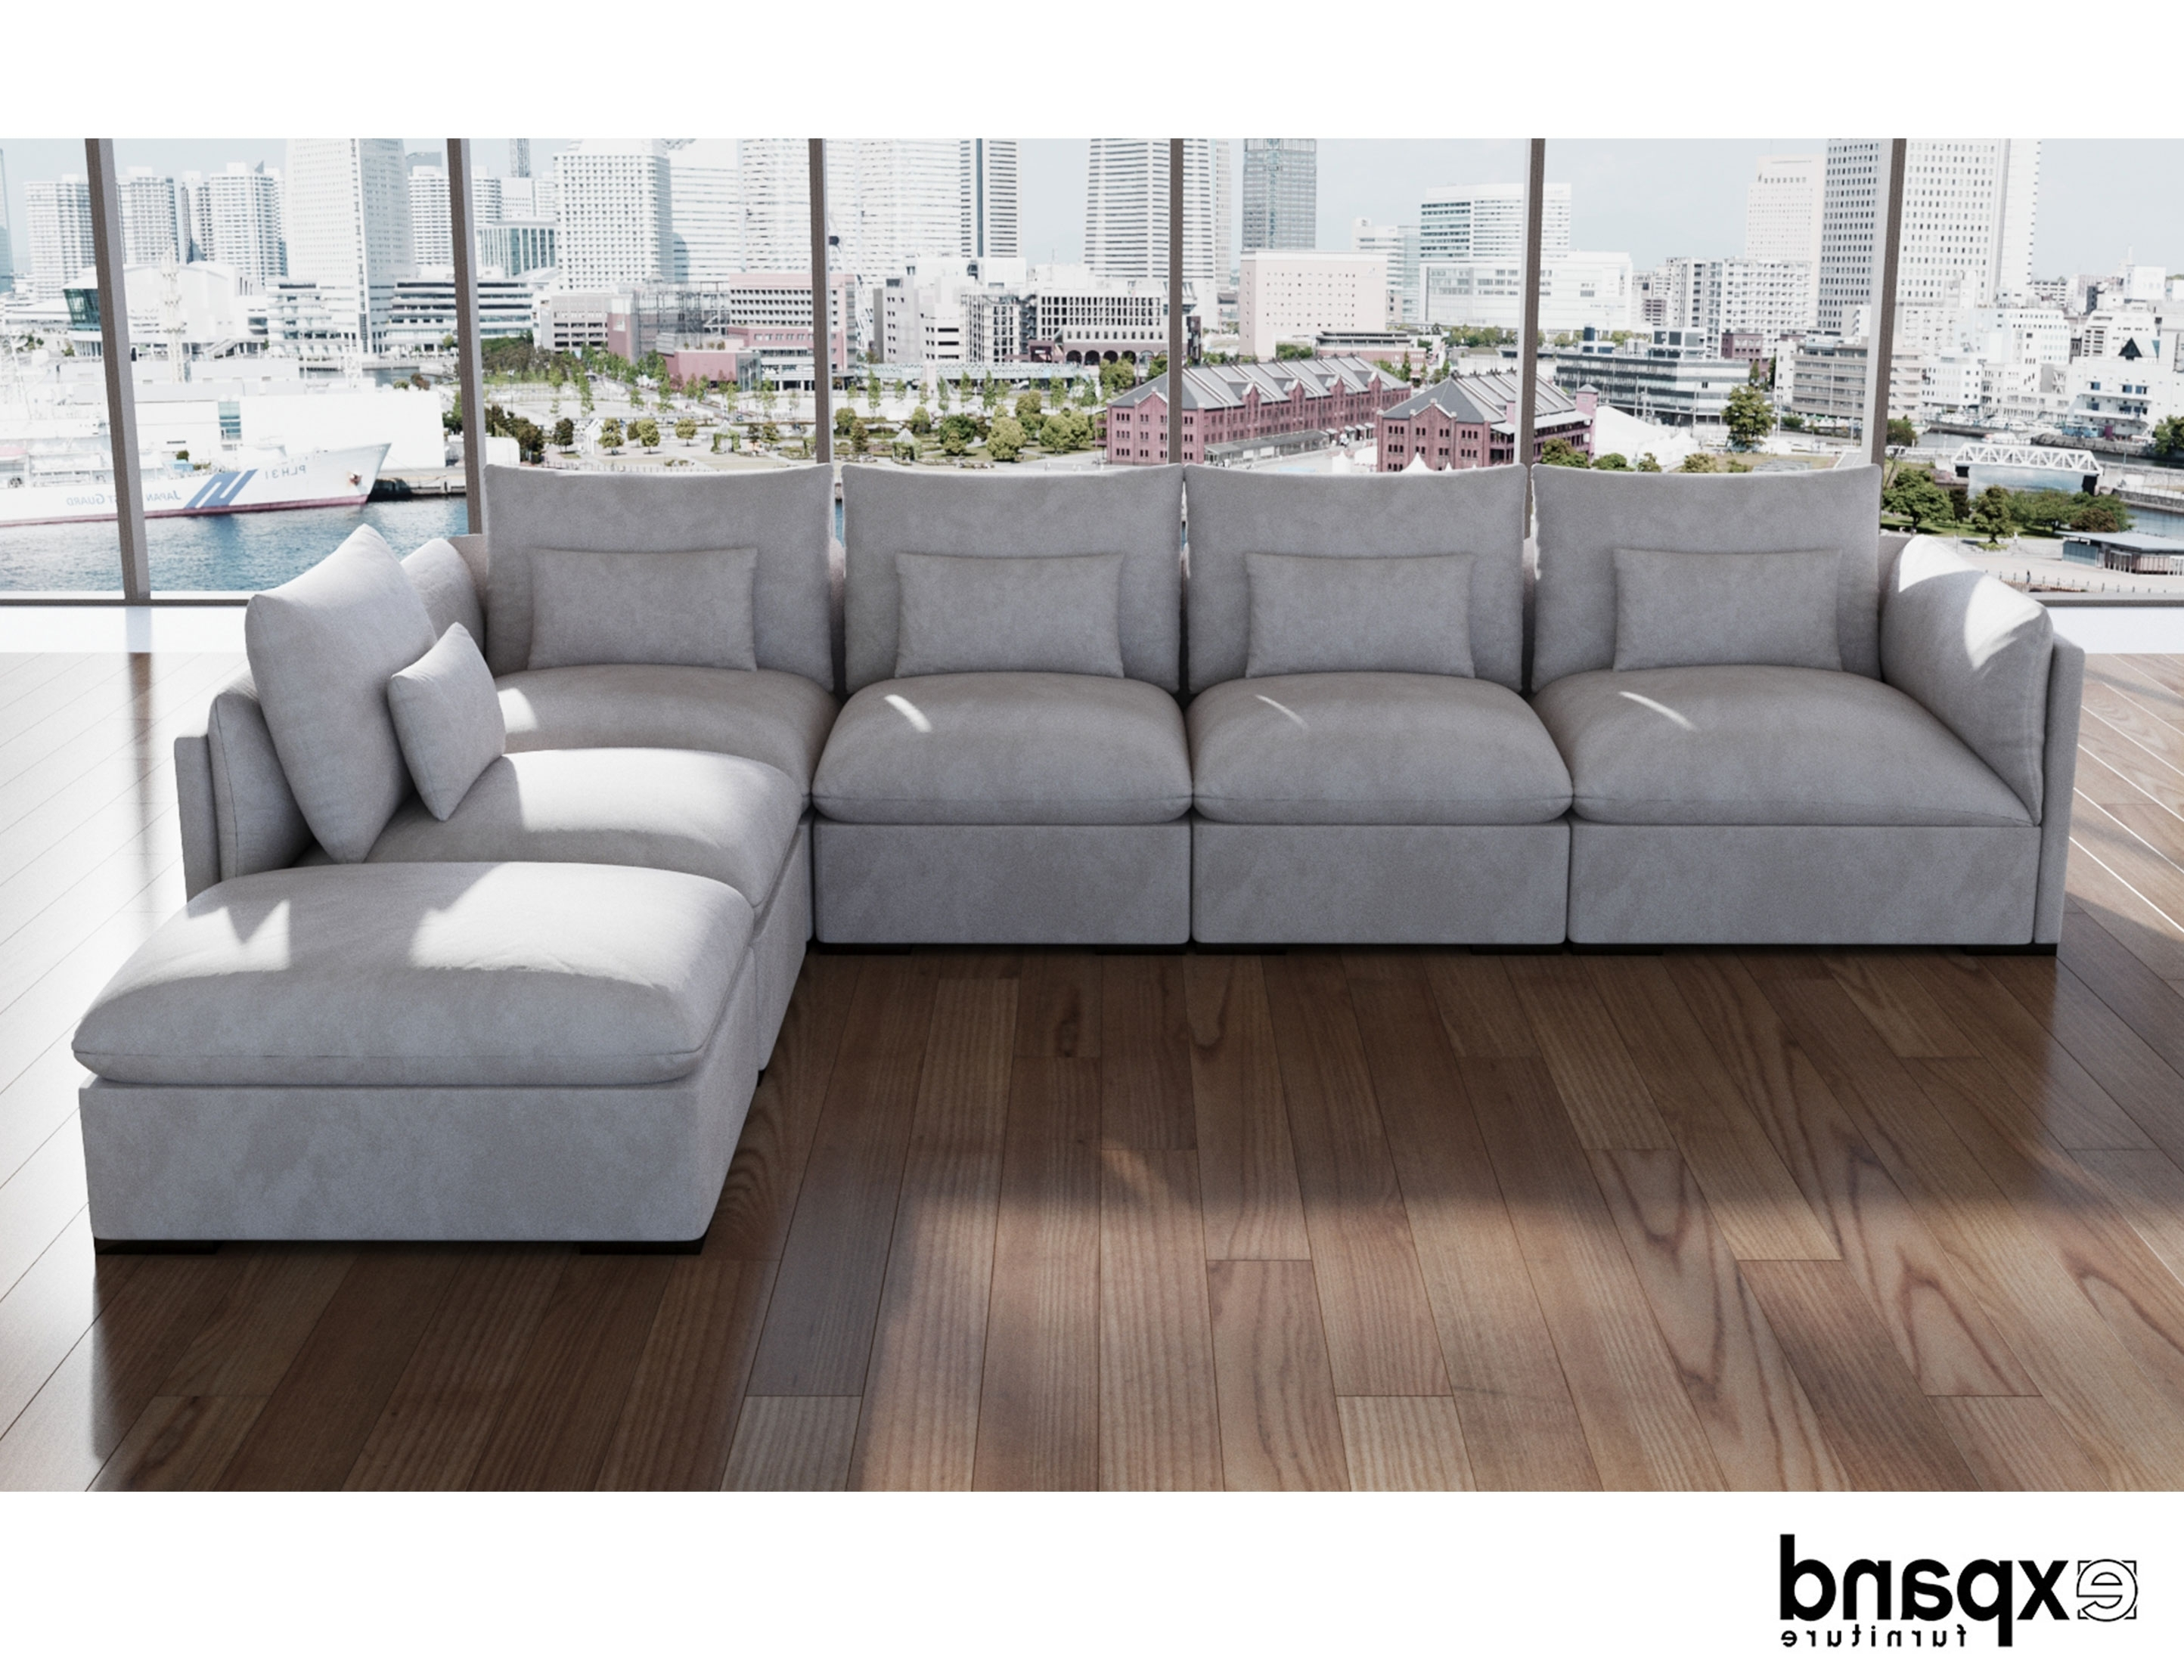 Down Feather Sectional Sofas Intended For Favorite Adagio: Luxury Sectional Modular Sofa Set Of  (View 4 of 20)